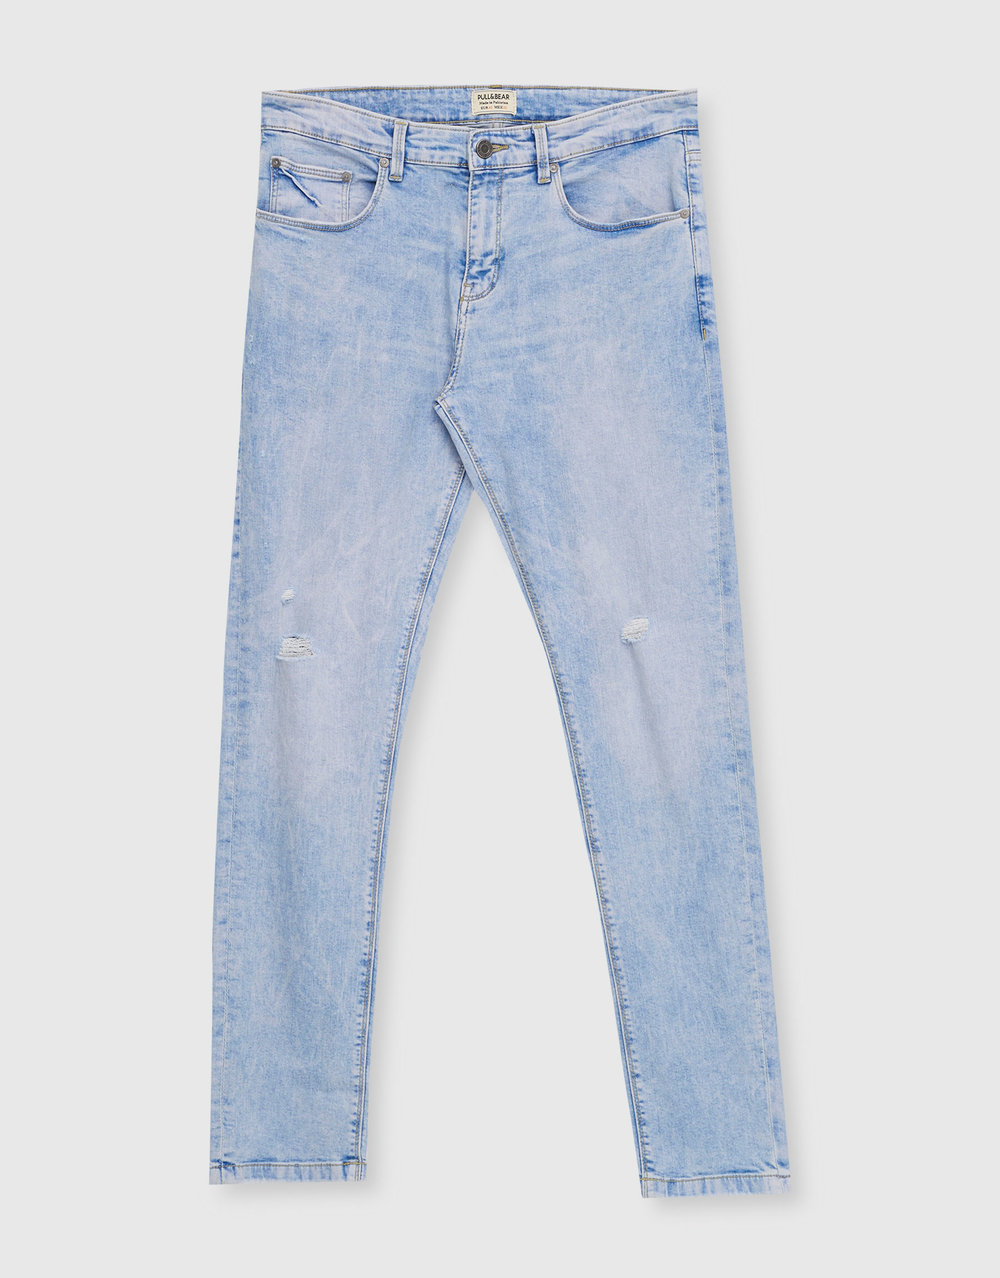 pull_and_bear_light_blue_skinny_jeans.jpg